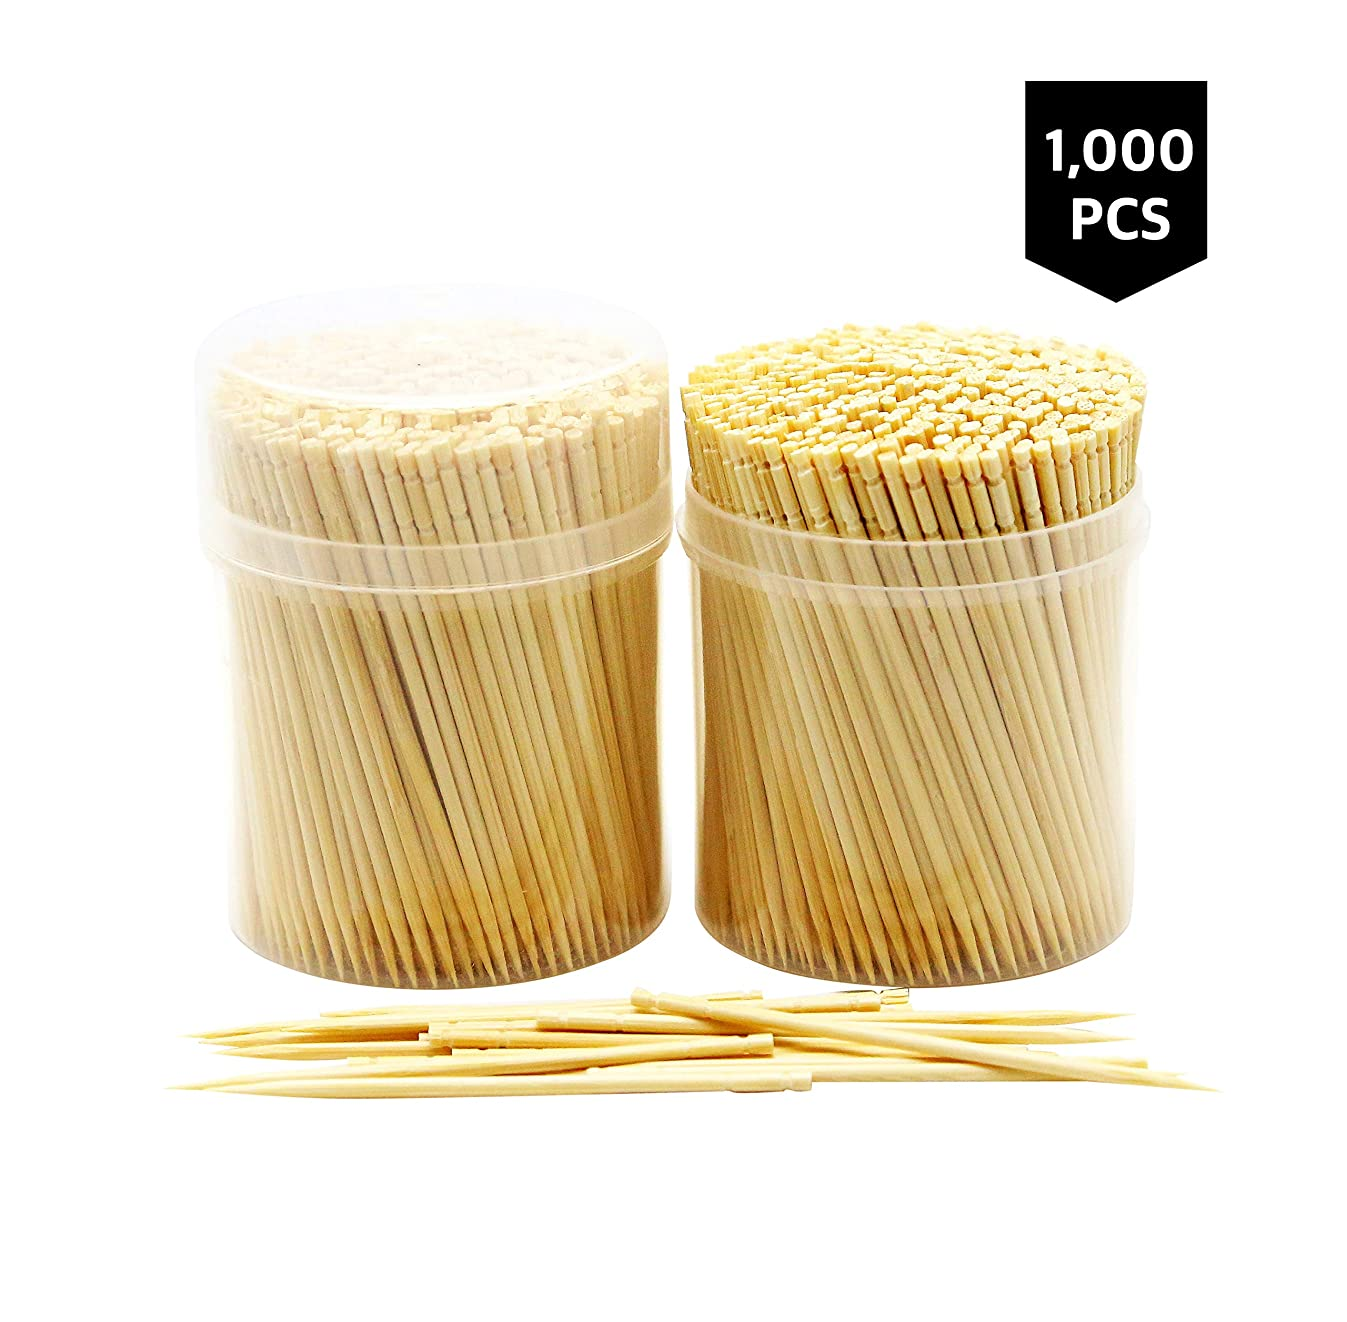 NEW NatureCore Bamboo Wooden Toothpicks - 1000 PCS, Sturdy Safe Round Clear Non-Fragile Storage, 2 Packs of 500 PCS, Party Catering Appetizer Fruit Cocktail Dessert Barbecue Art Craft Teeth Cleaning